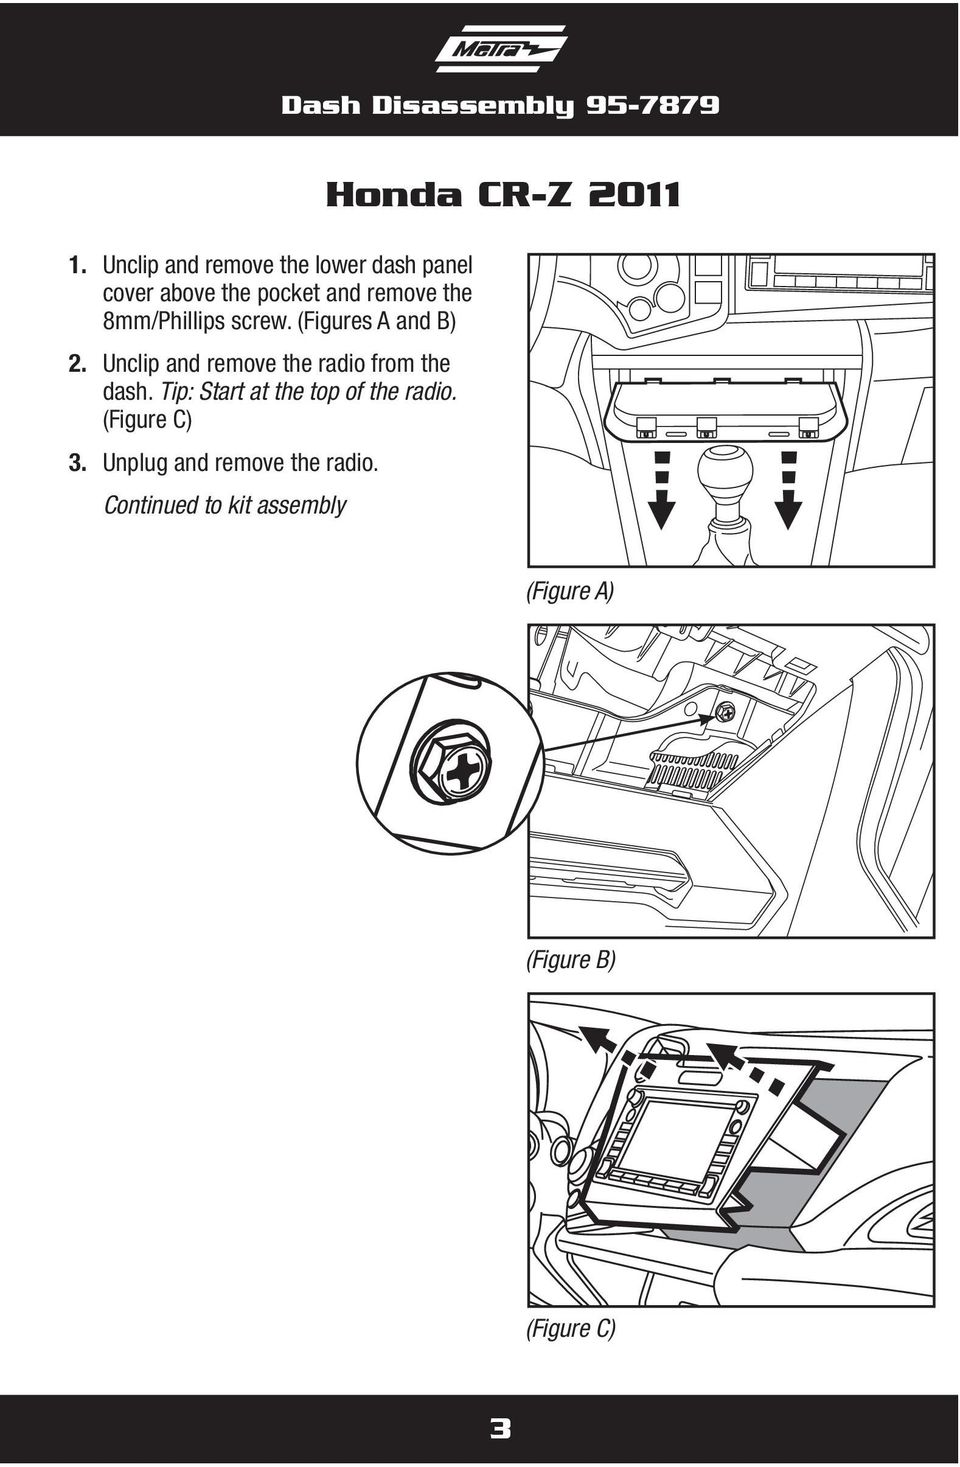 8mm/Phillips screw. (Figures A and B) 2. Unclip and remove the radio from the dash.